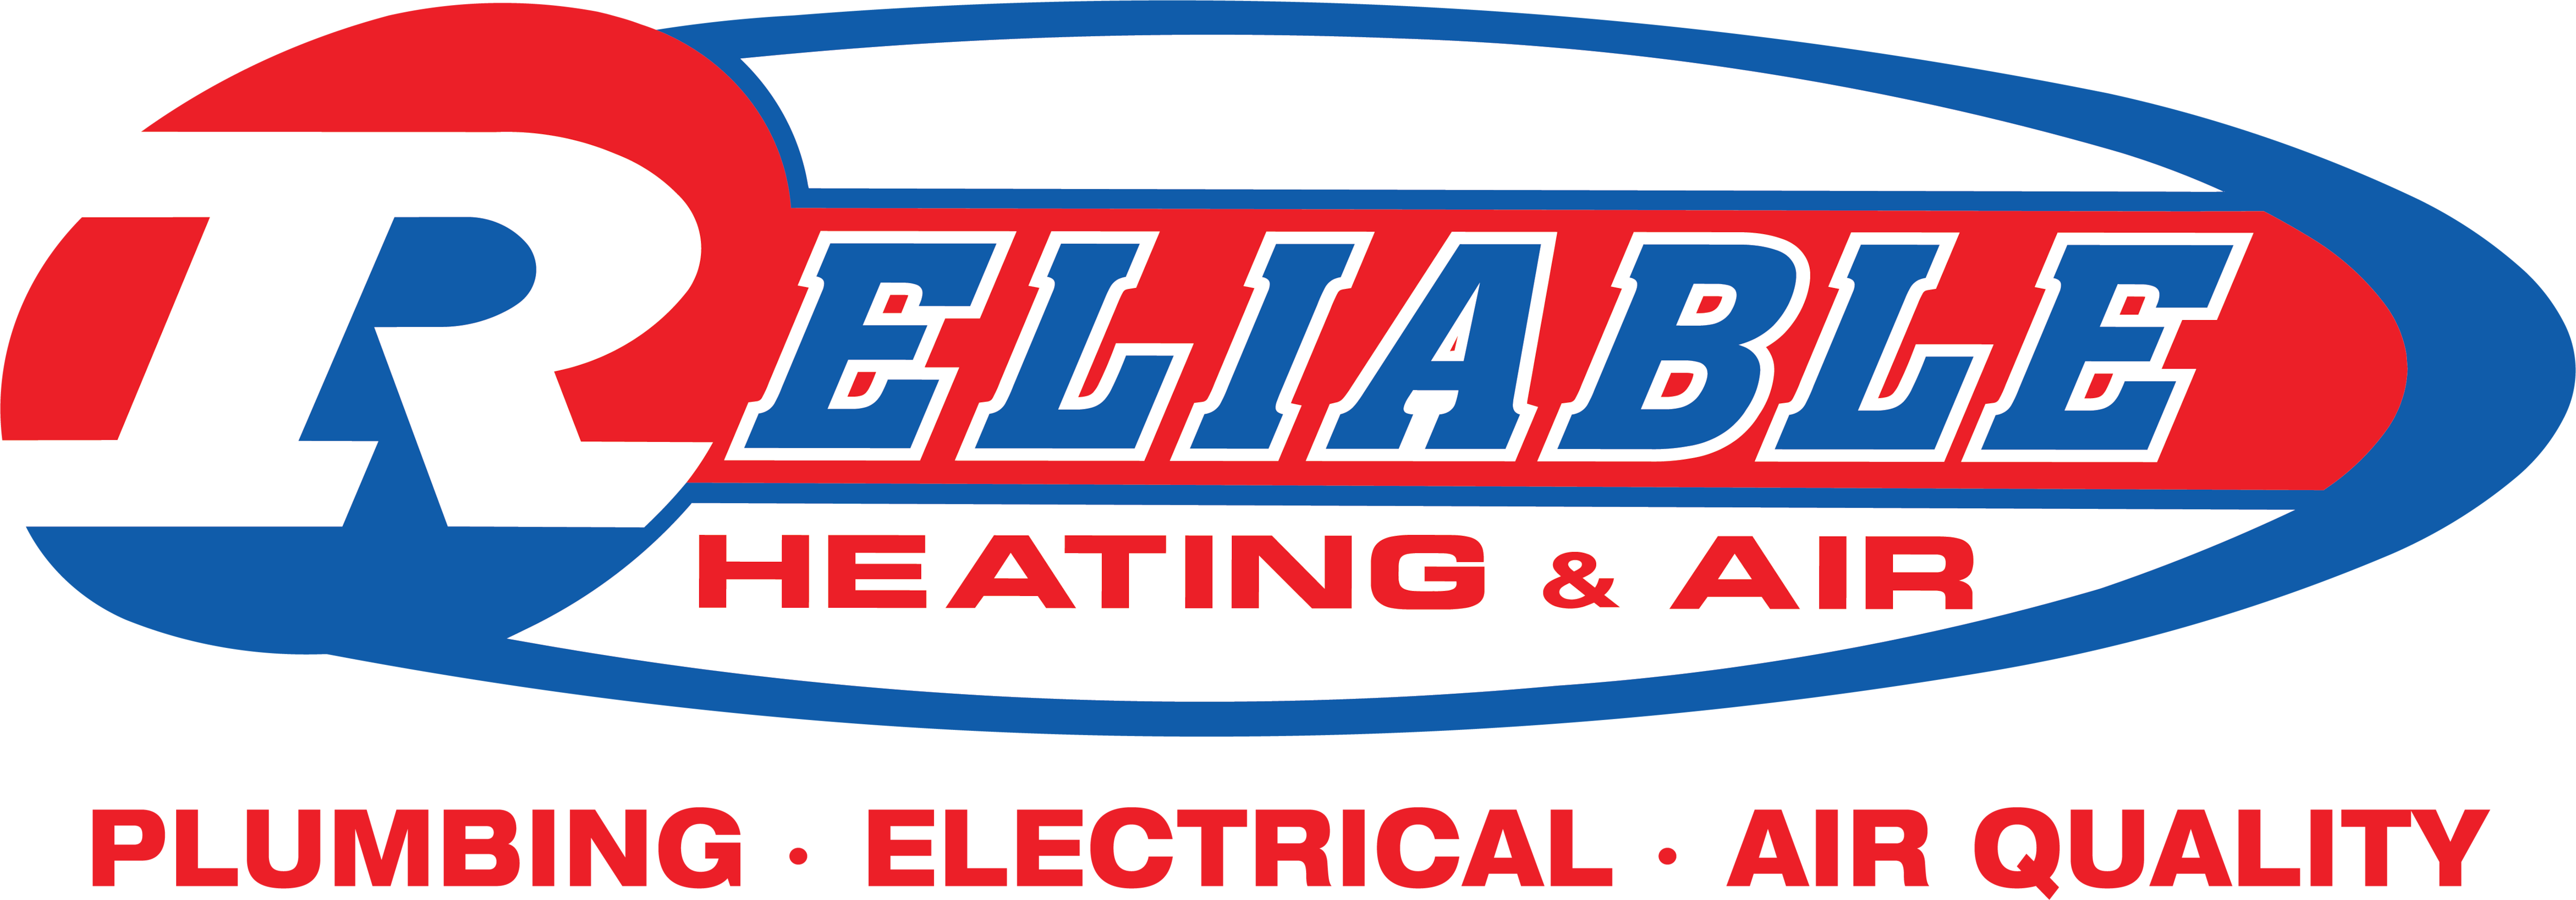 Reliable Heating & Air Plumbing & Electrical logo